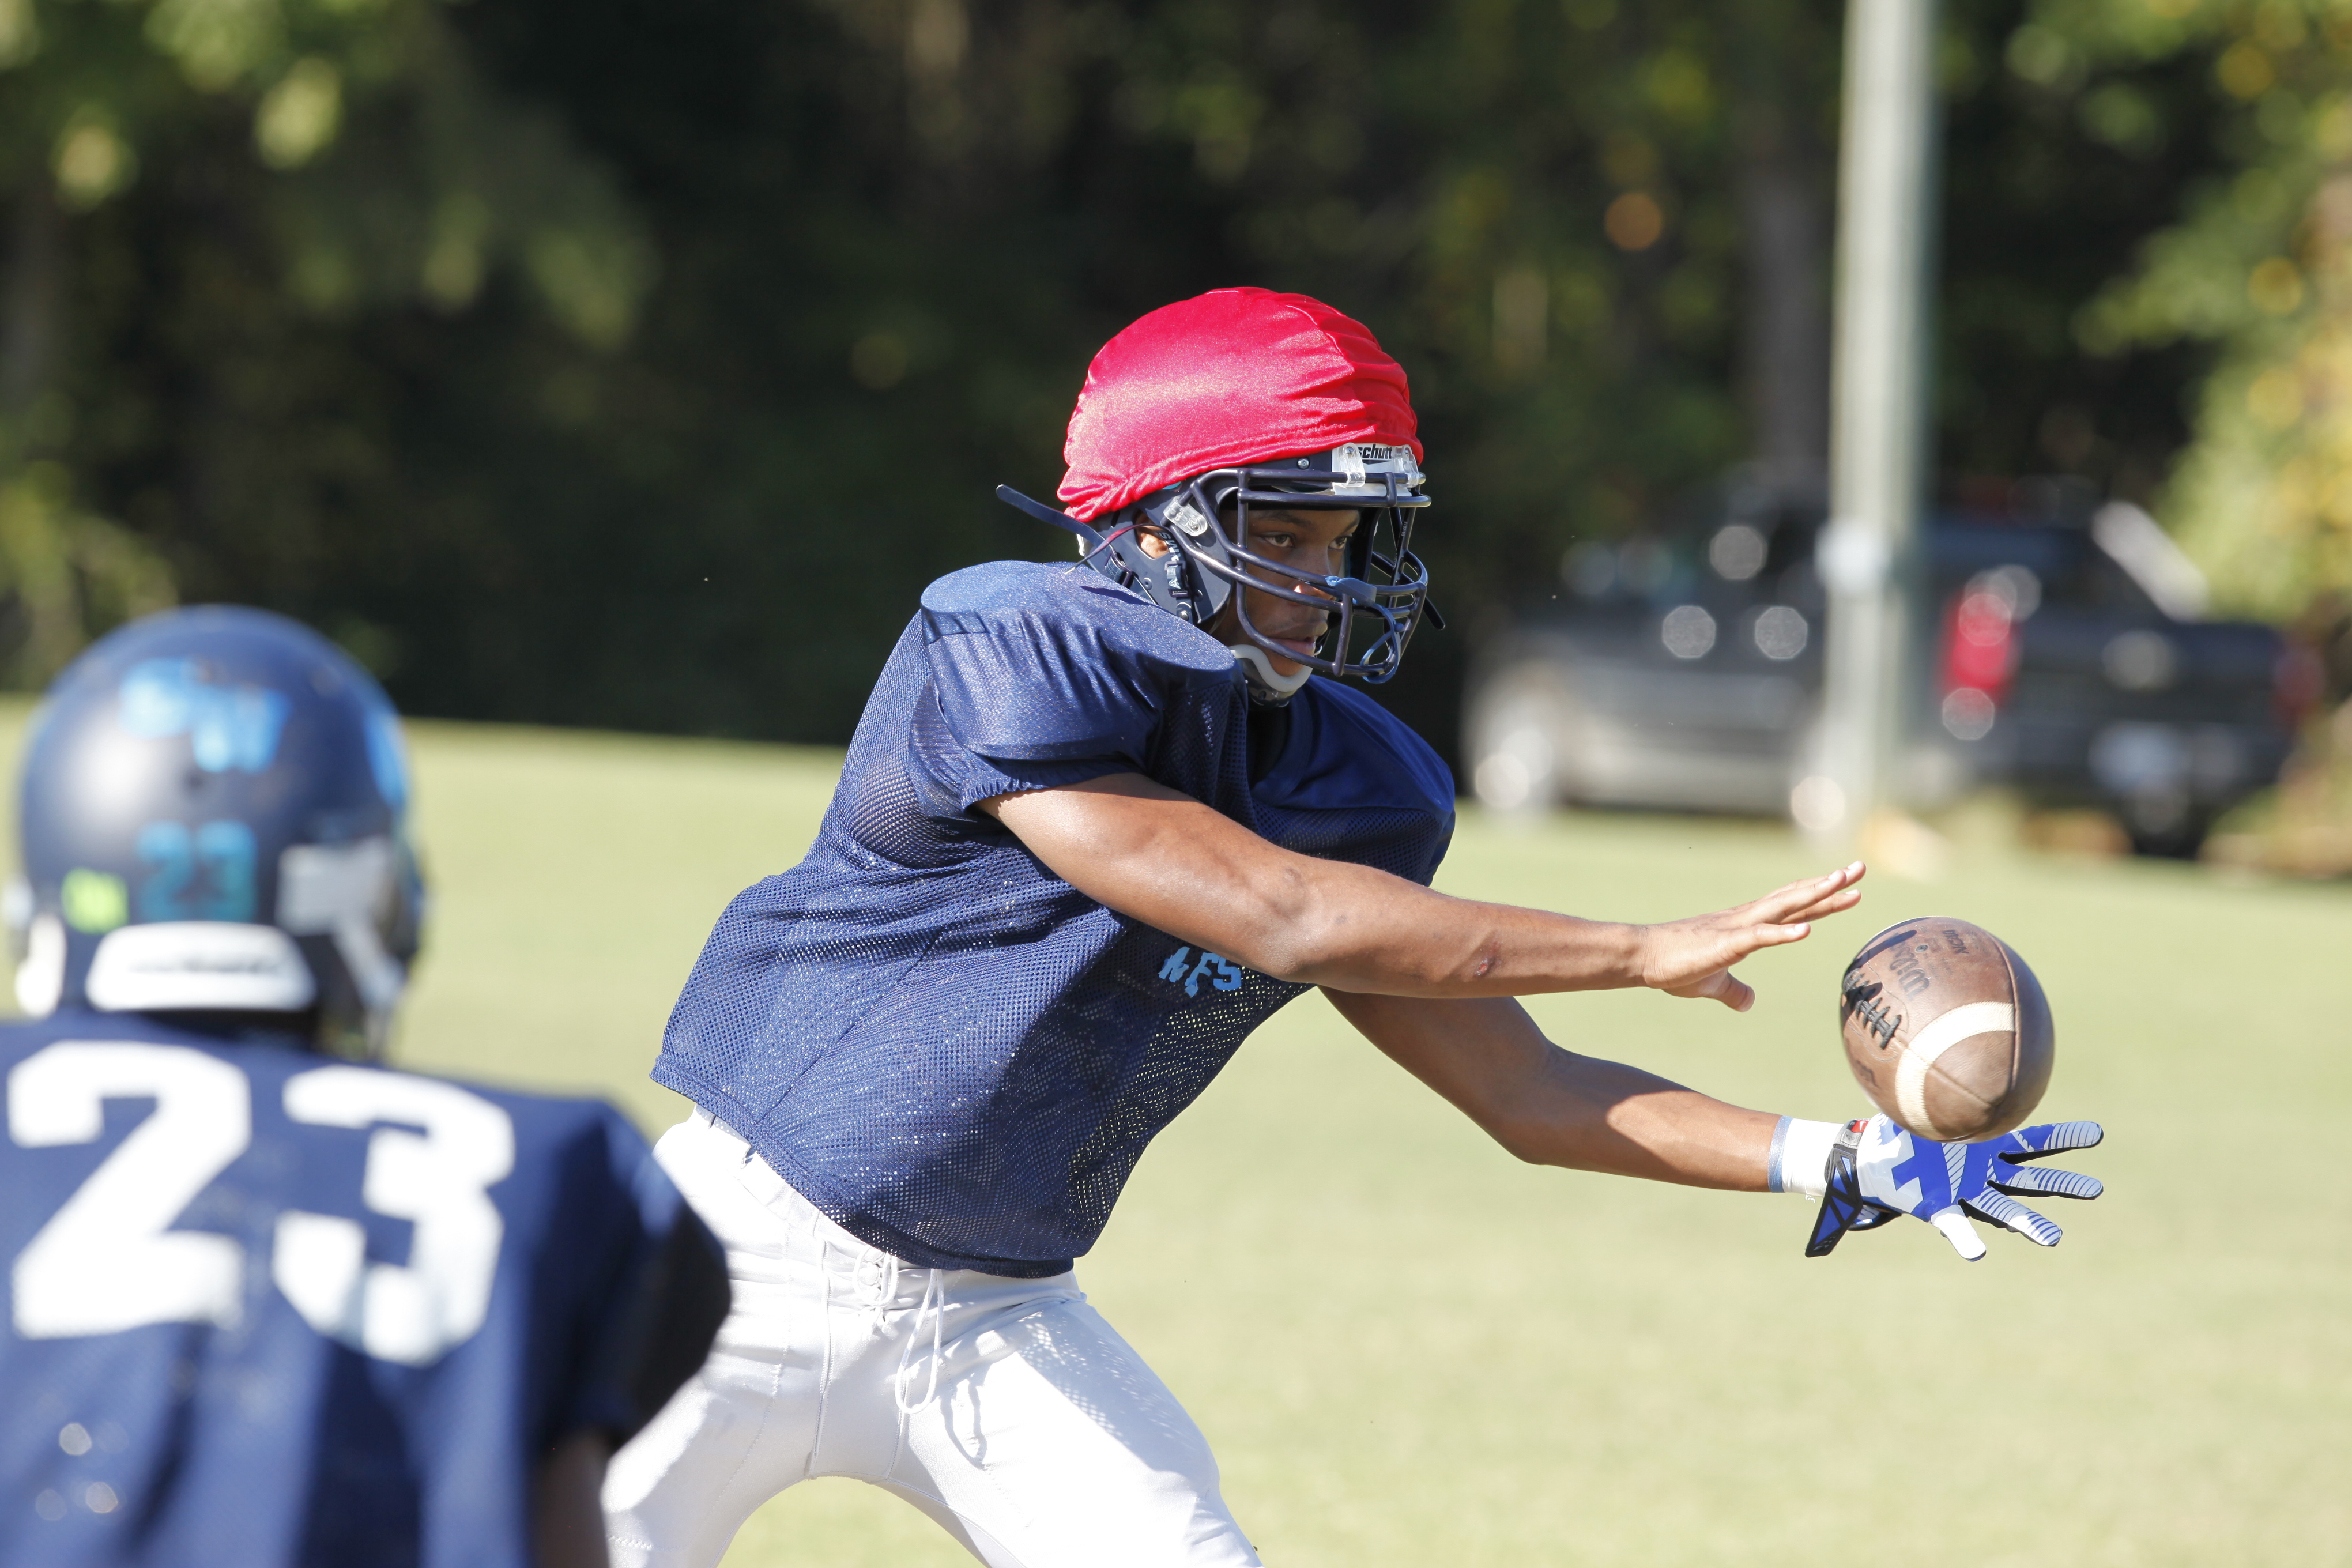 Quontellas Norwood returned to practice this week (Photo: Mark Dolejs, USA TODAY Sports)